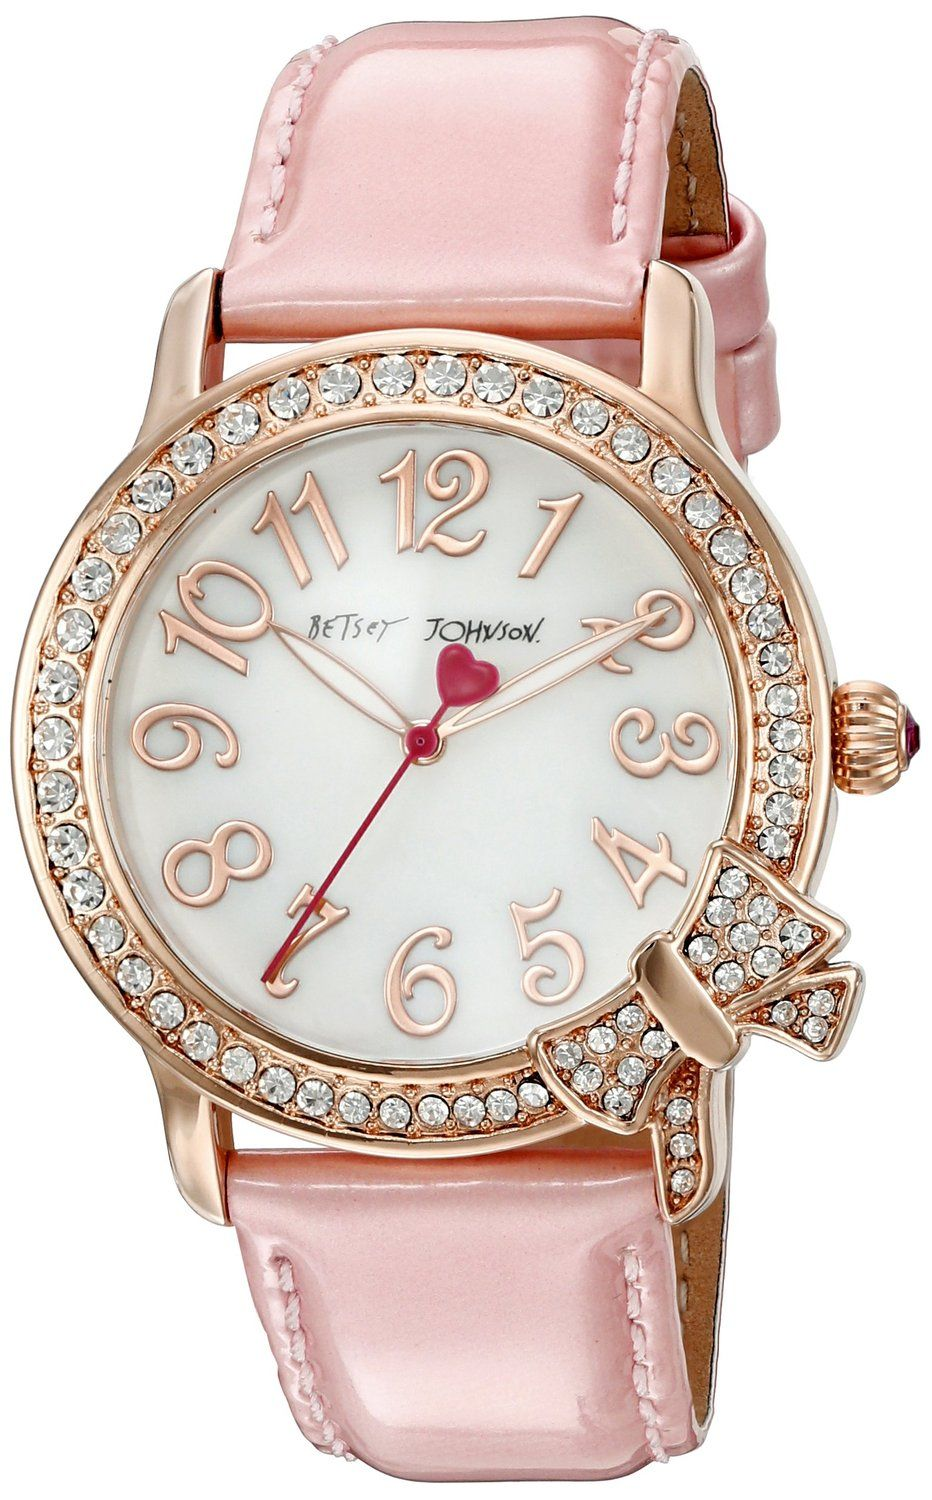 Pink Women's Watch from Betsey Johnson